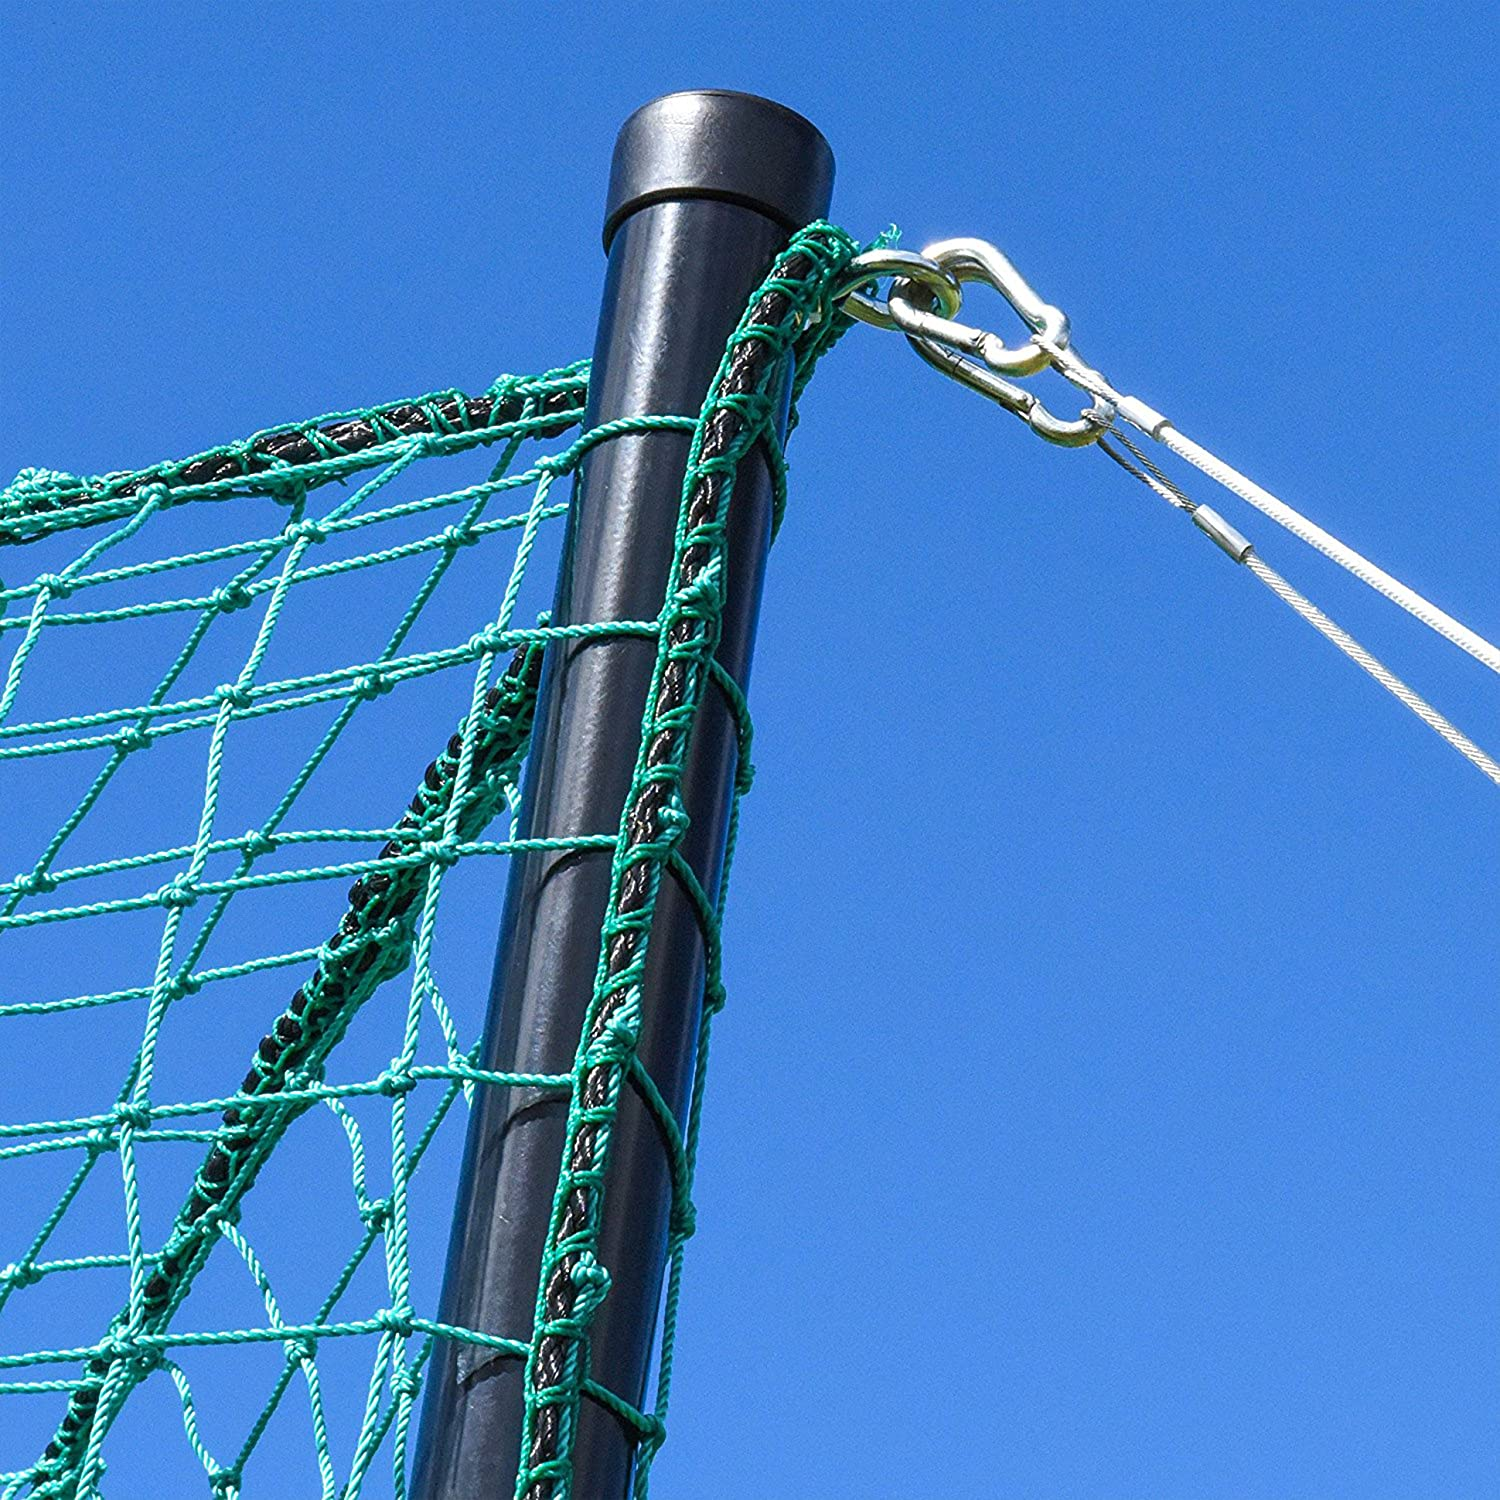 Archery Back Stop Netting *Premium Grade* Choice of 6 Different Sizes Green//White Net World Sports